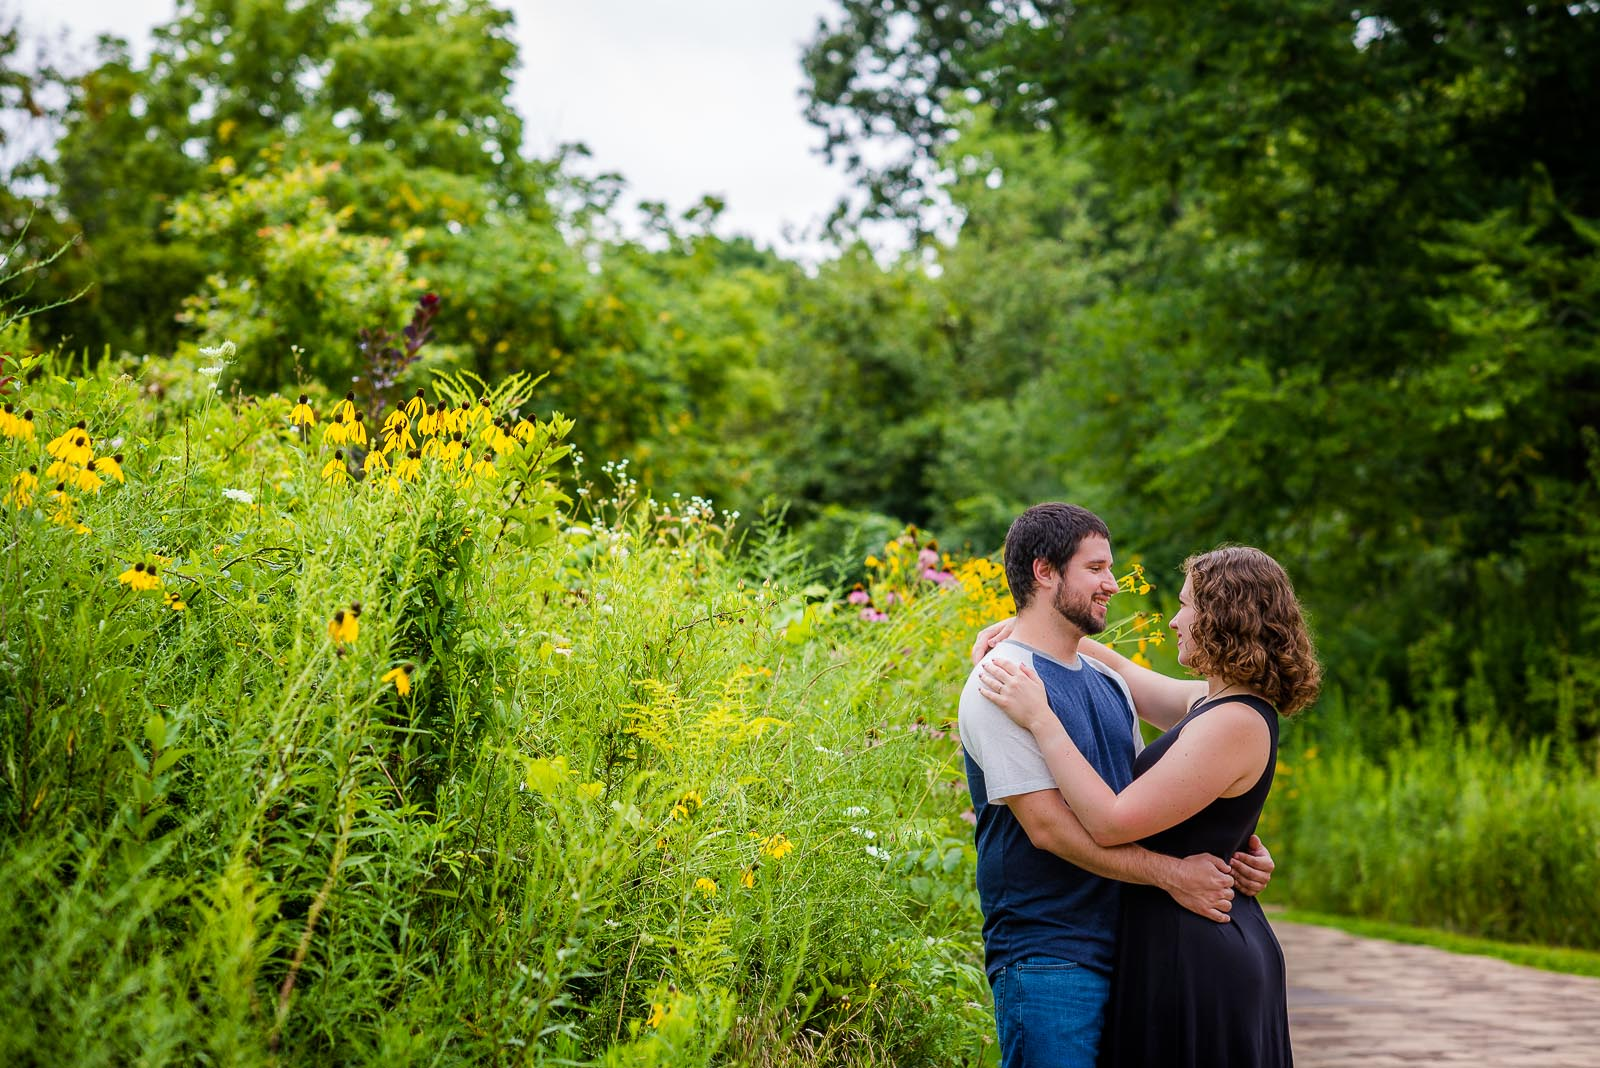 Eric_and_Christy_Photography_Blog_Engagement_Andrea_Clint-6